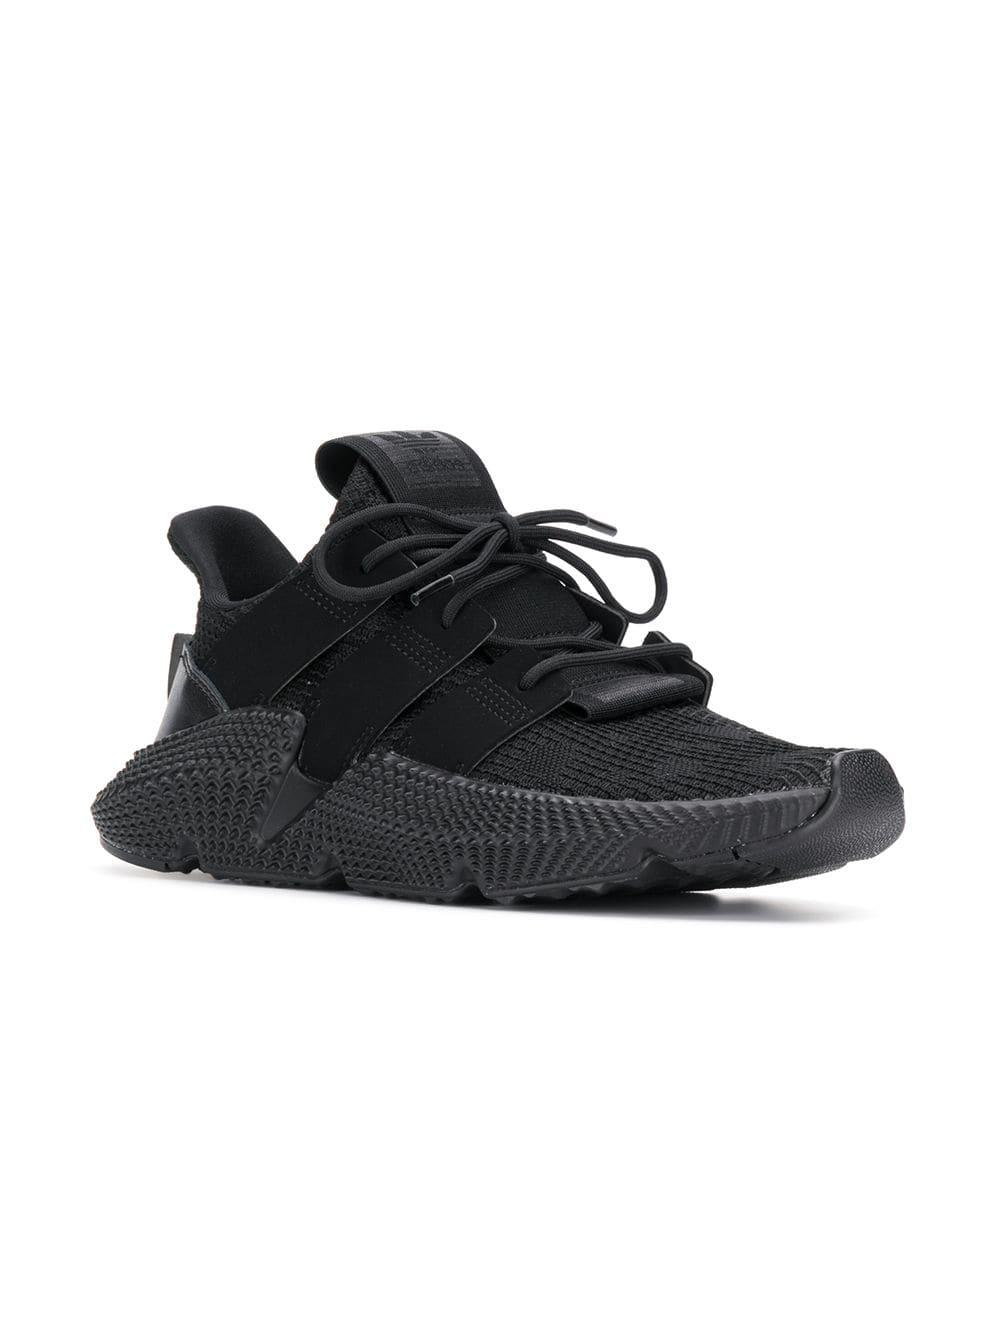 Adidas - Black Prophere Sneakers for Men - Lyst. View fullscreen e18013157